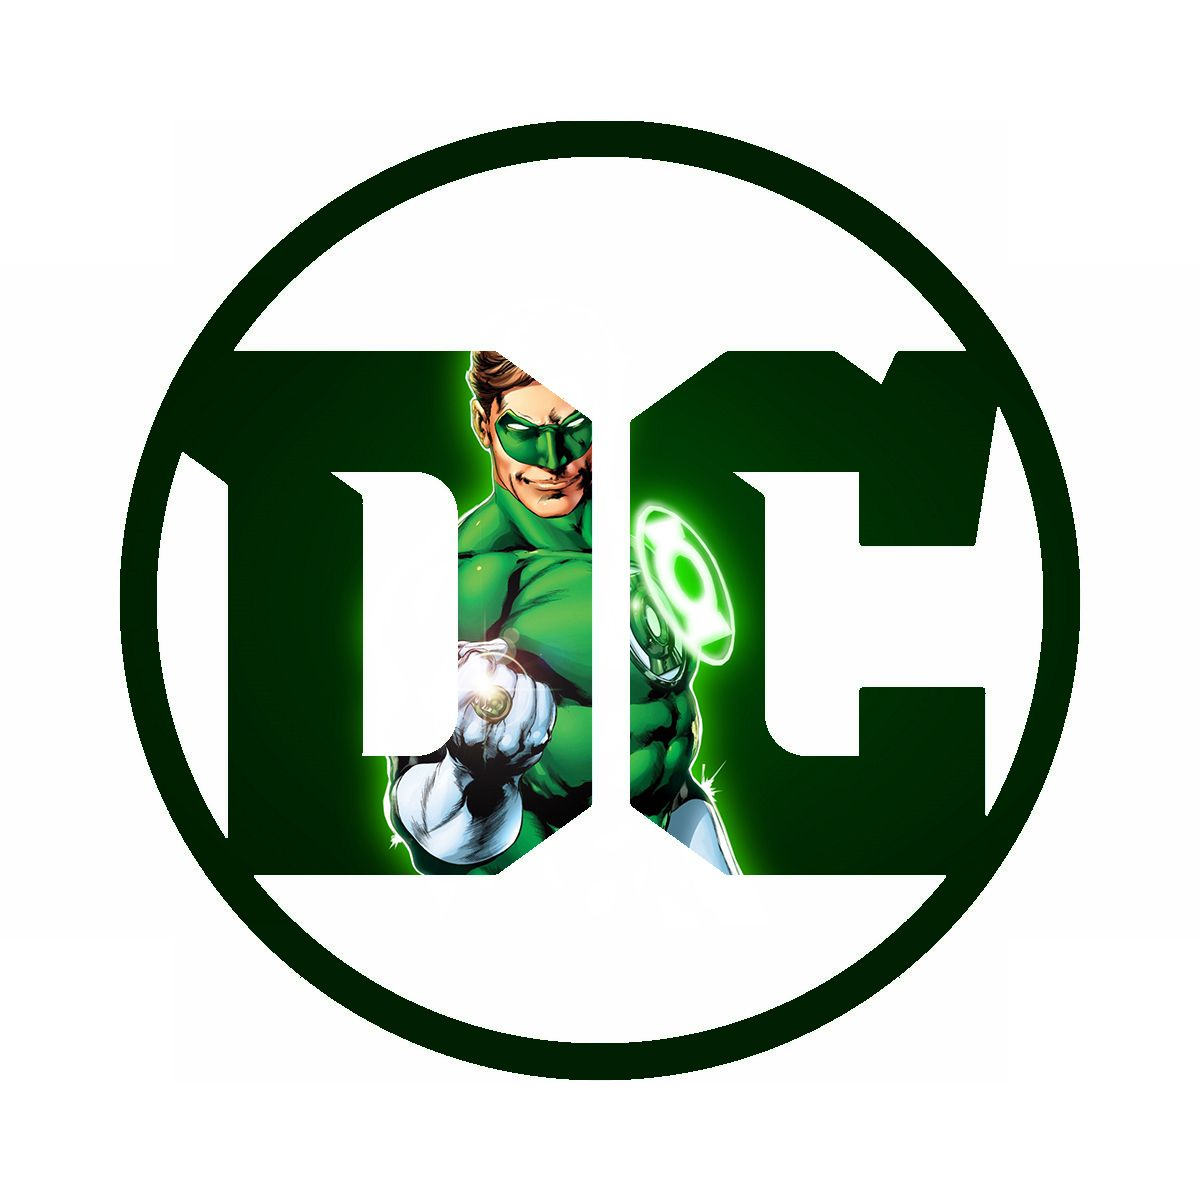 DC Logo - brandchannel: New DC Comics Logo Receives Tepid Reception from Fans